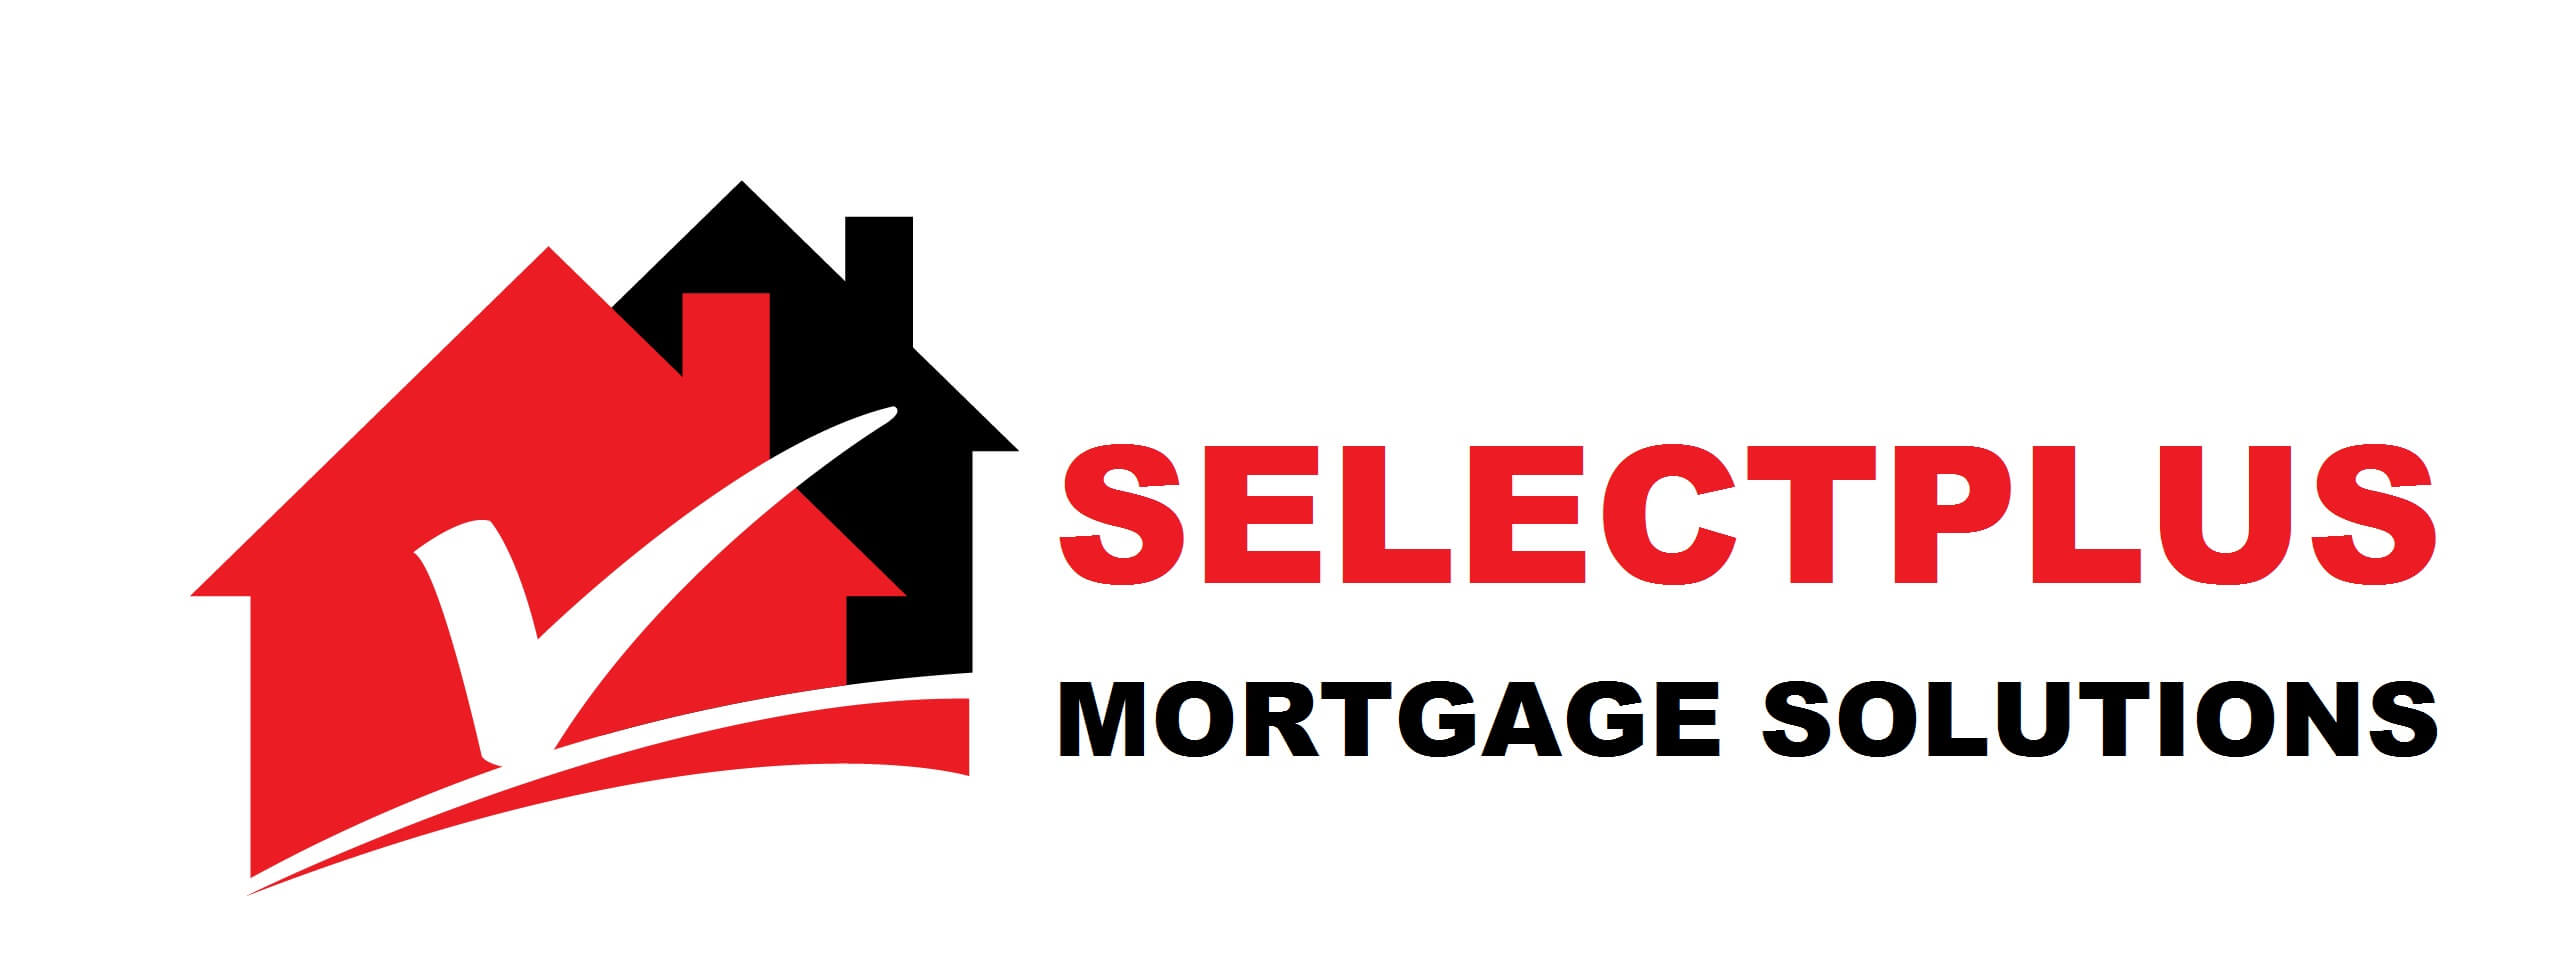 Selectplus Mortgage Soutions 佳泽信贷